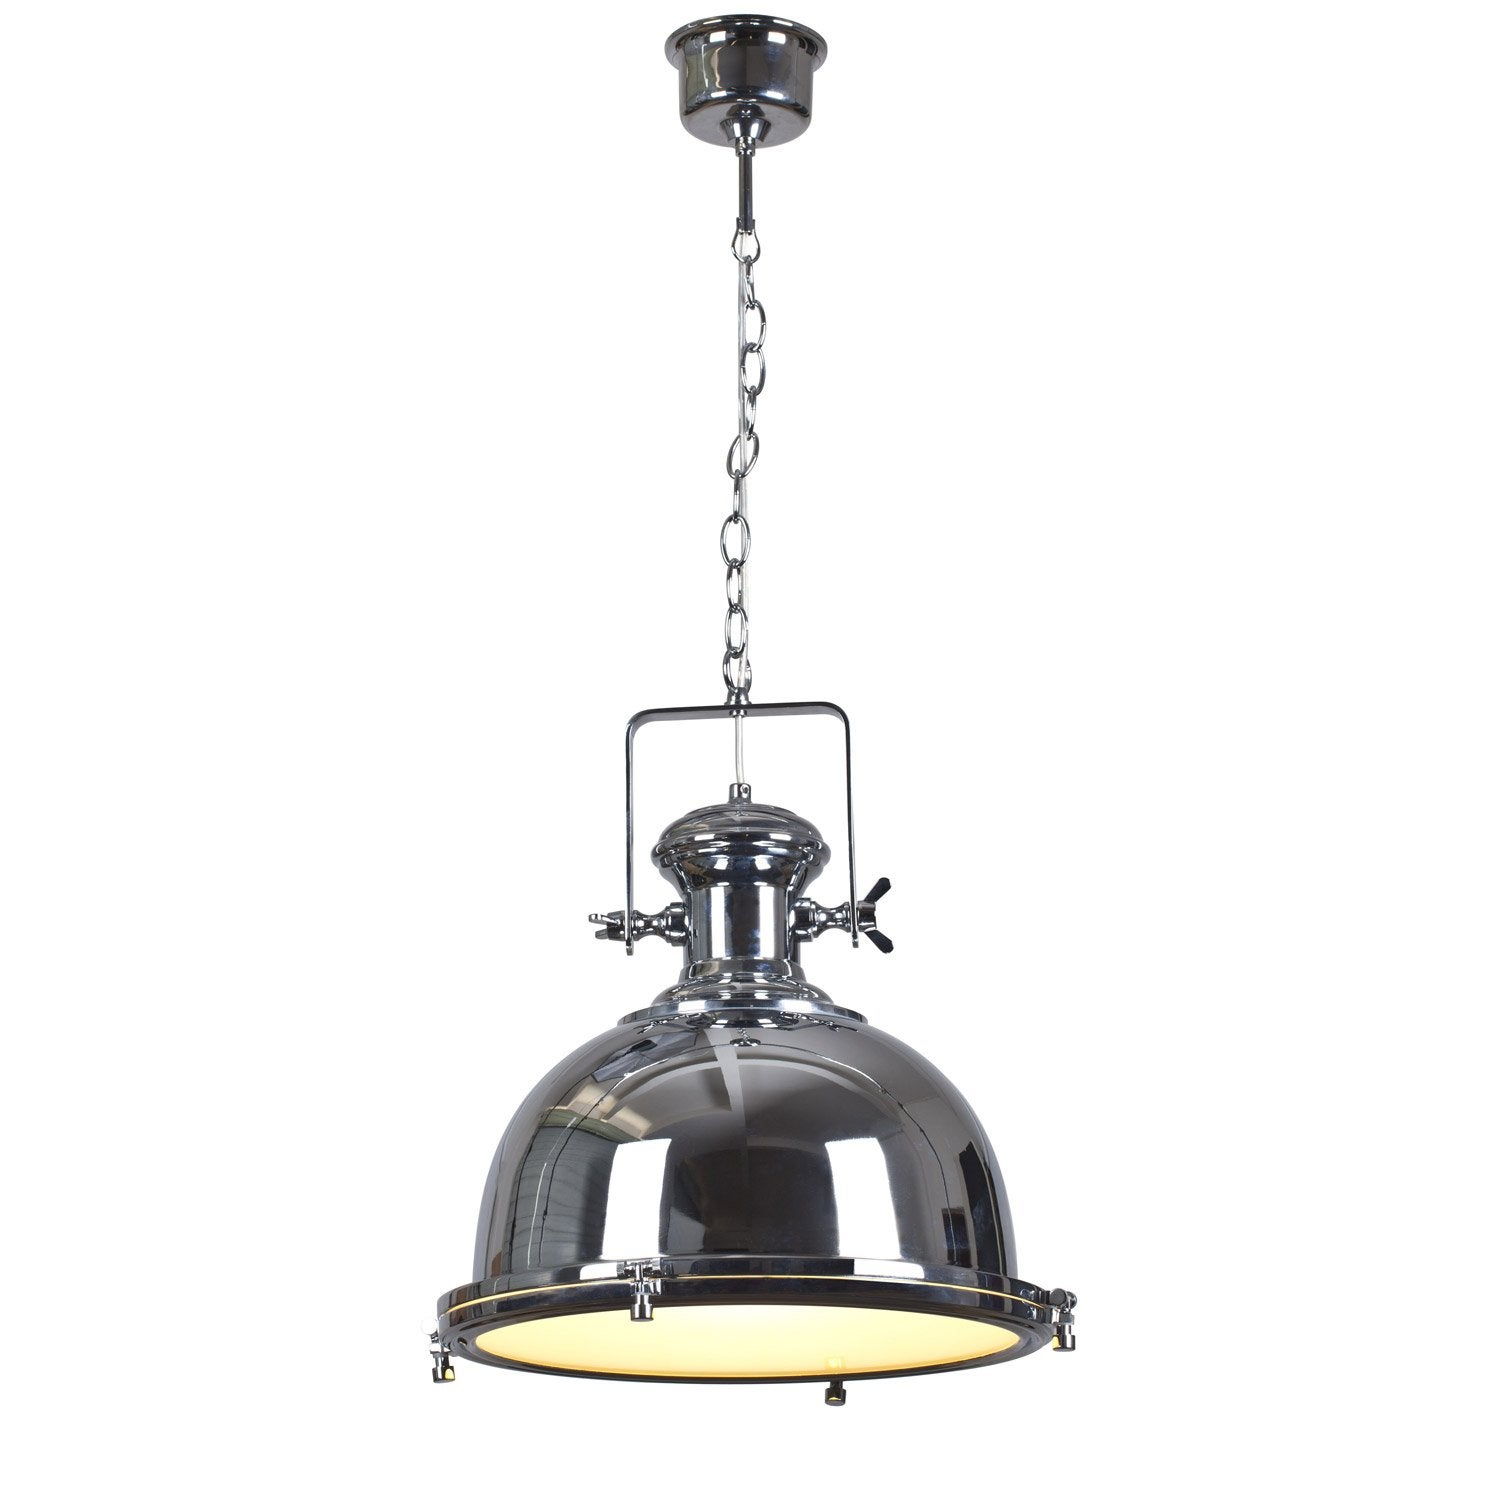 Suspension industriel old burdi m tal chrome 1 x 60 w lucide leroy merlin - Suspensions leroy merlin ...